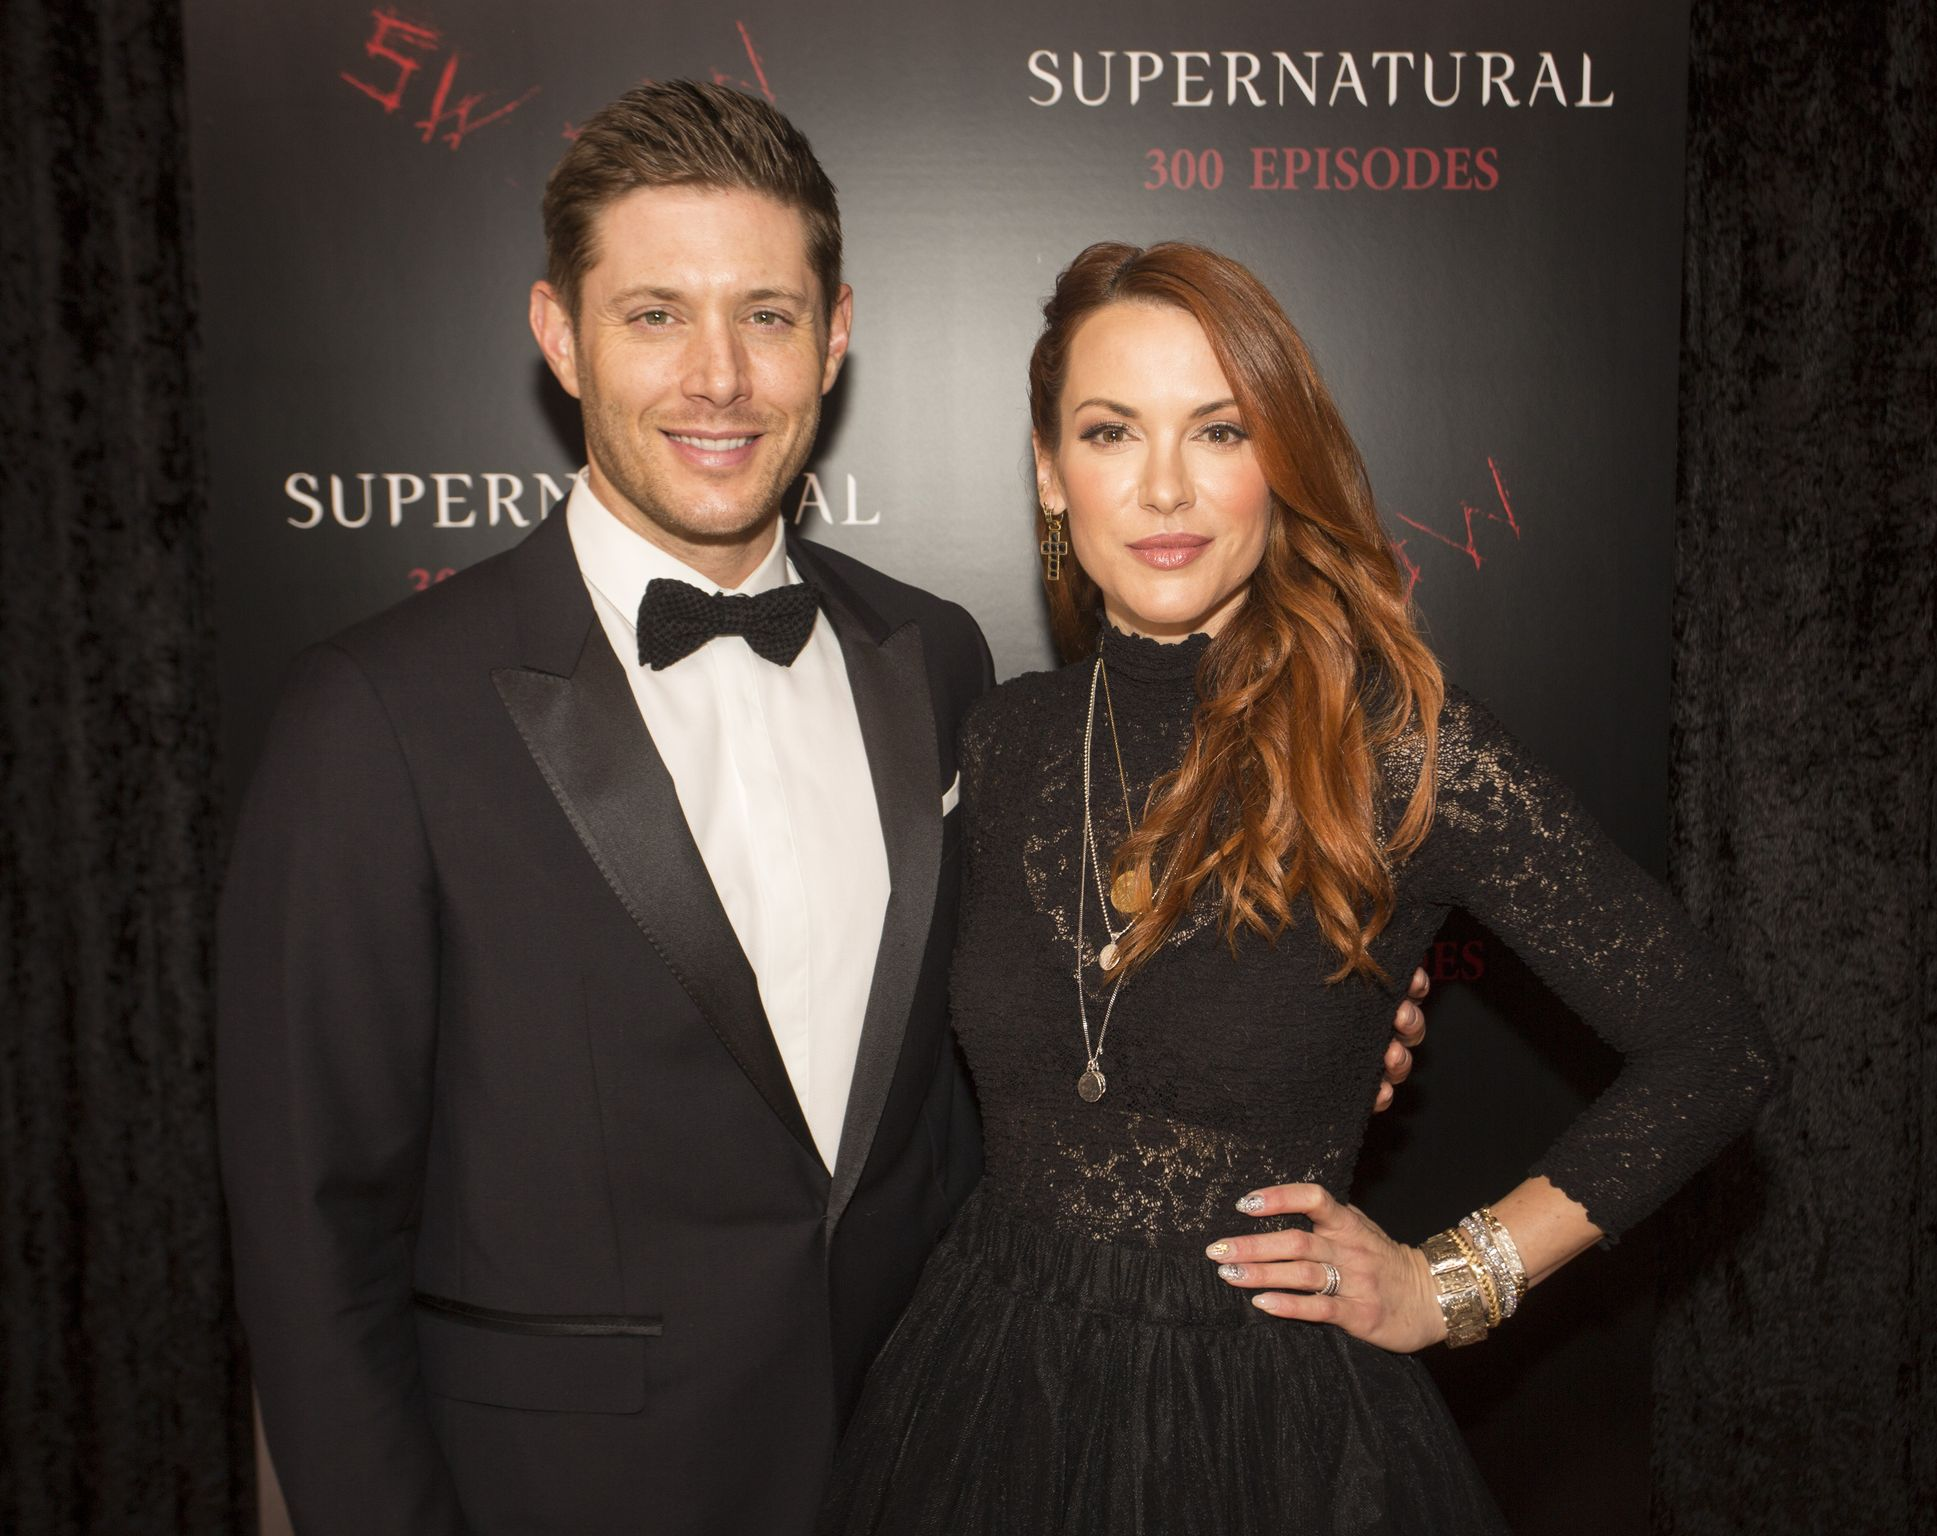 """Jensen Ackles and Danneel Ackles at the red carpet at the """"SUPERNATURAL"""" 300TH Episode Celebration in 2018 